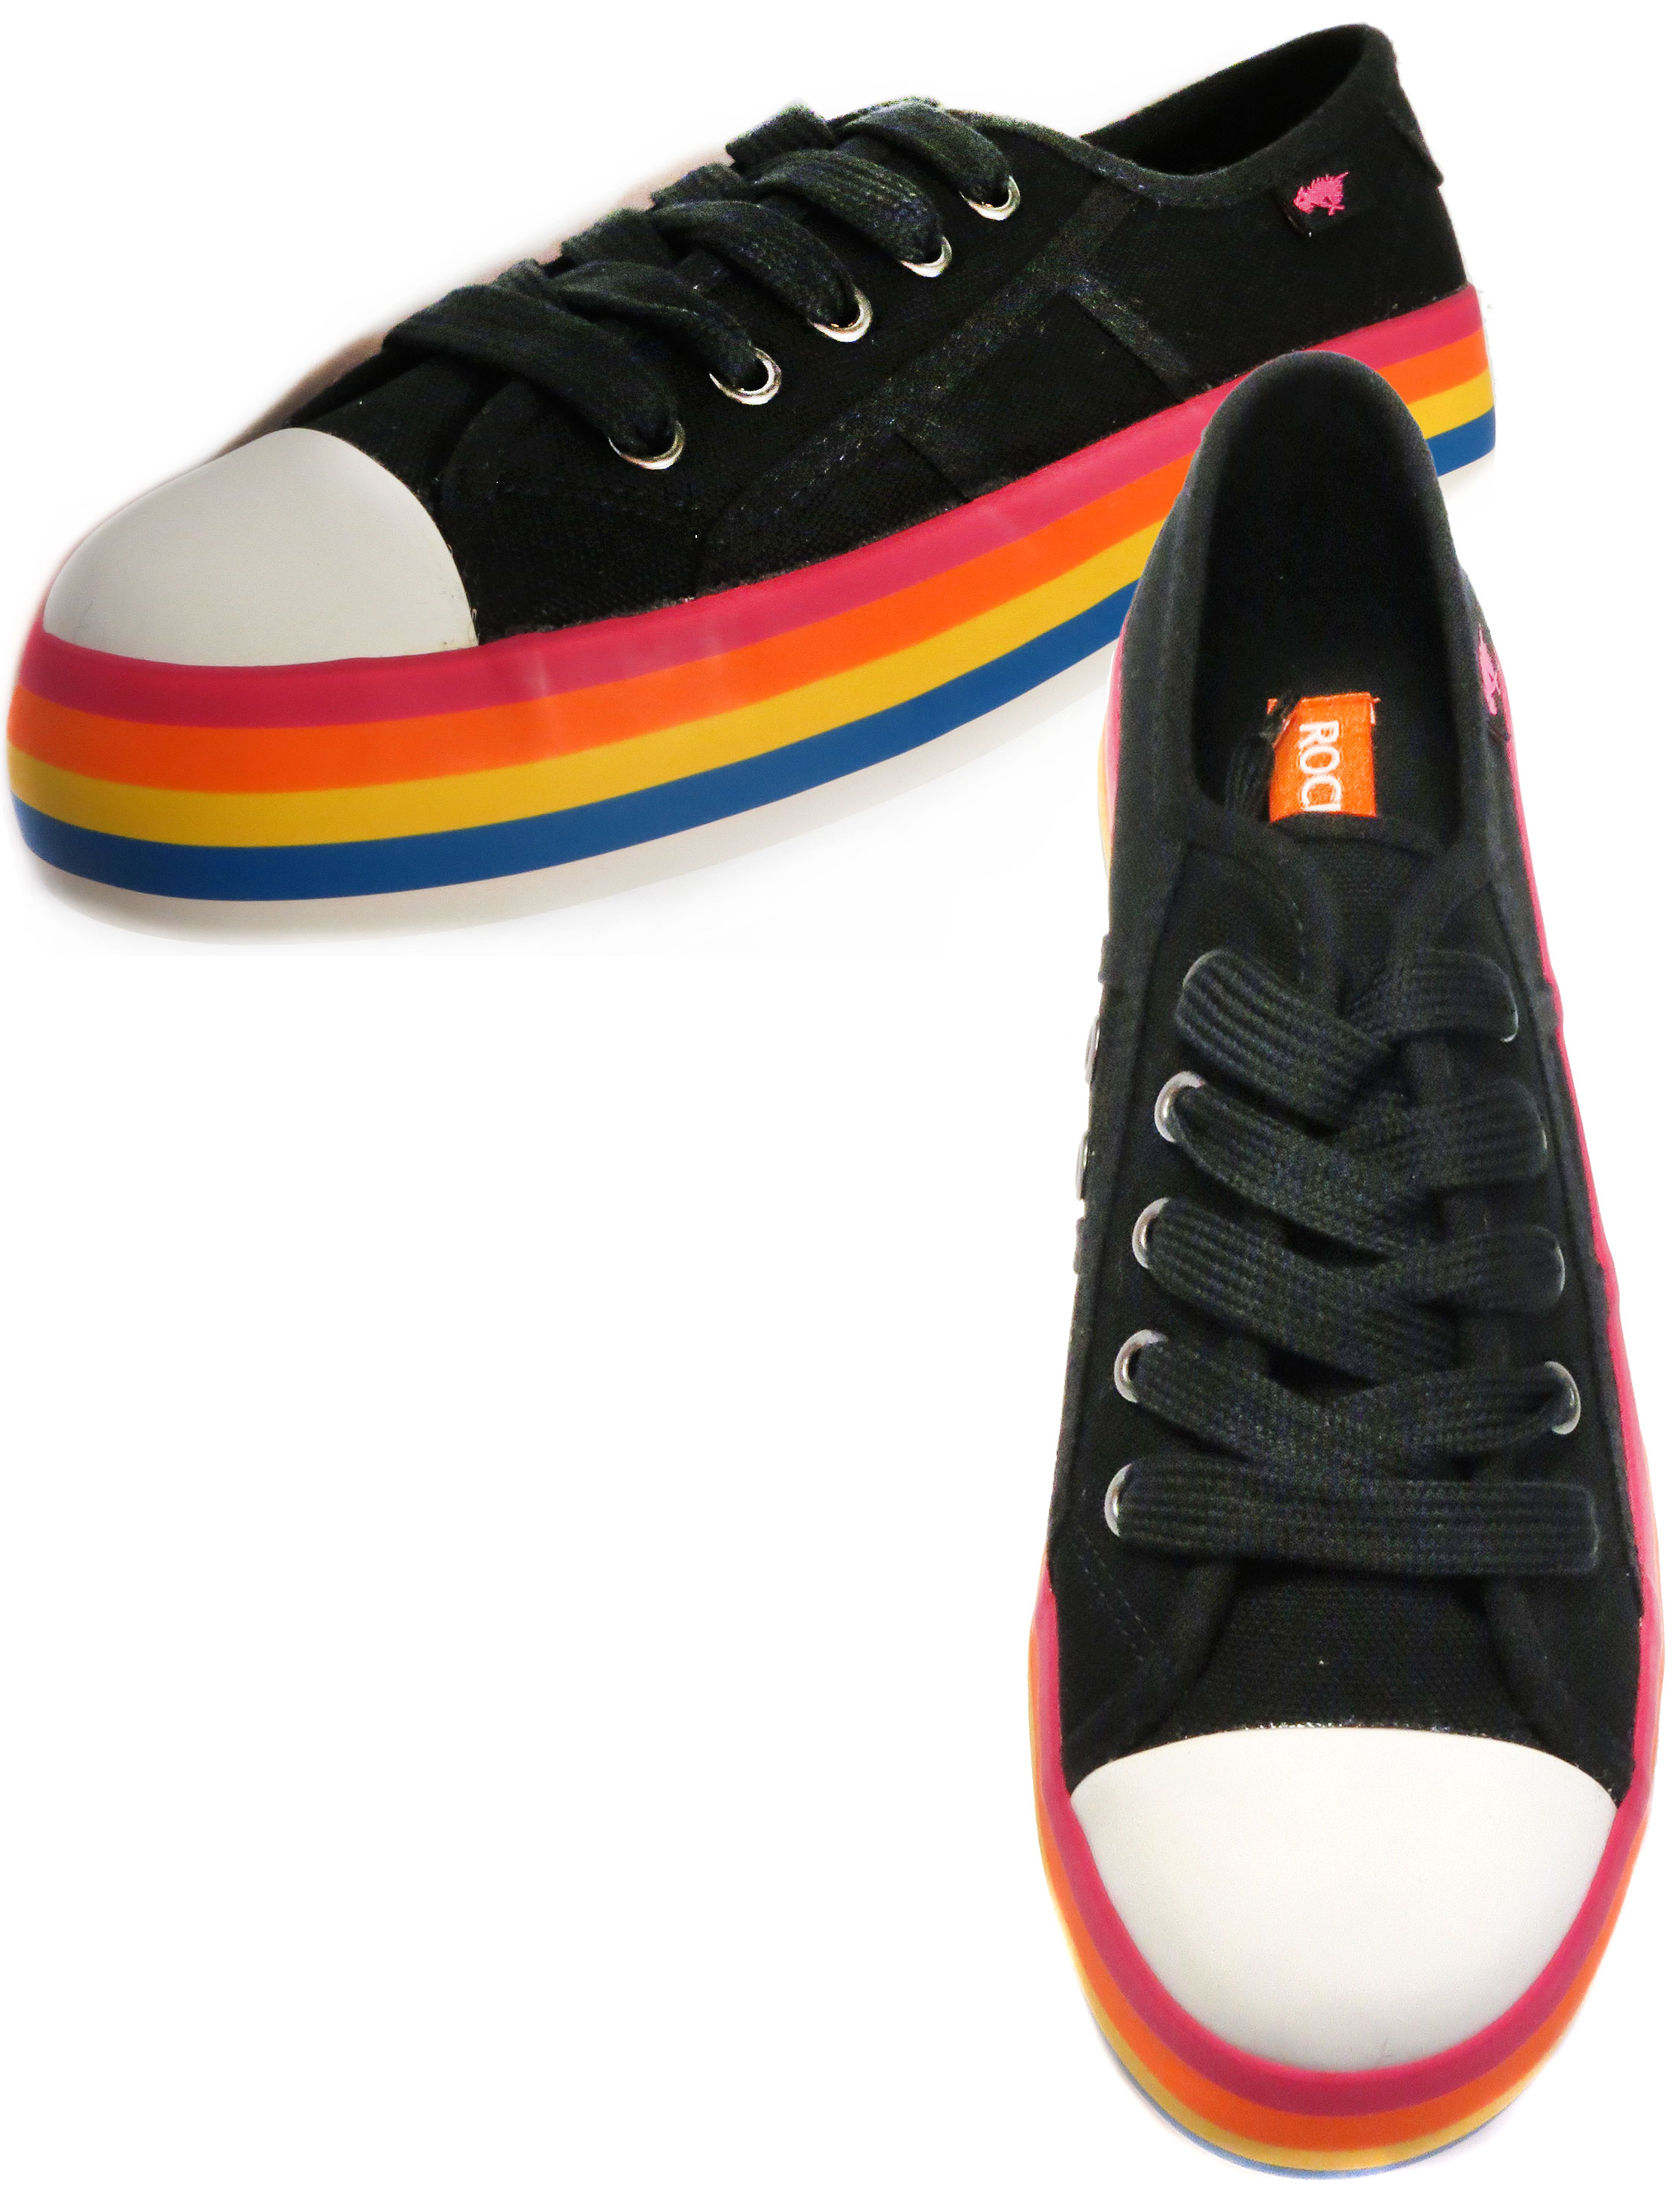 Rainbow Sneaks